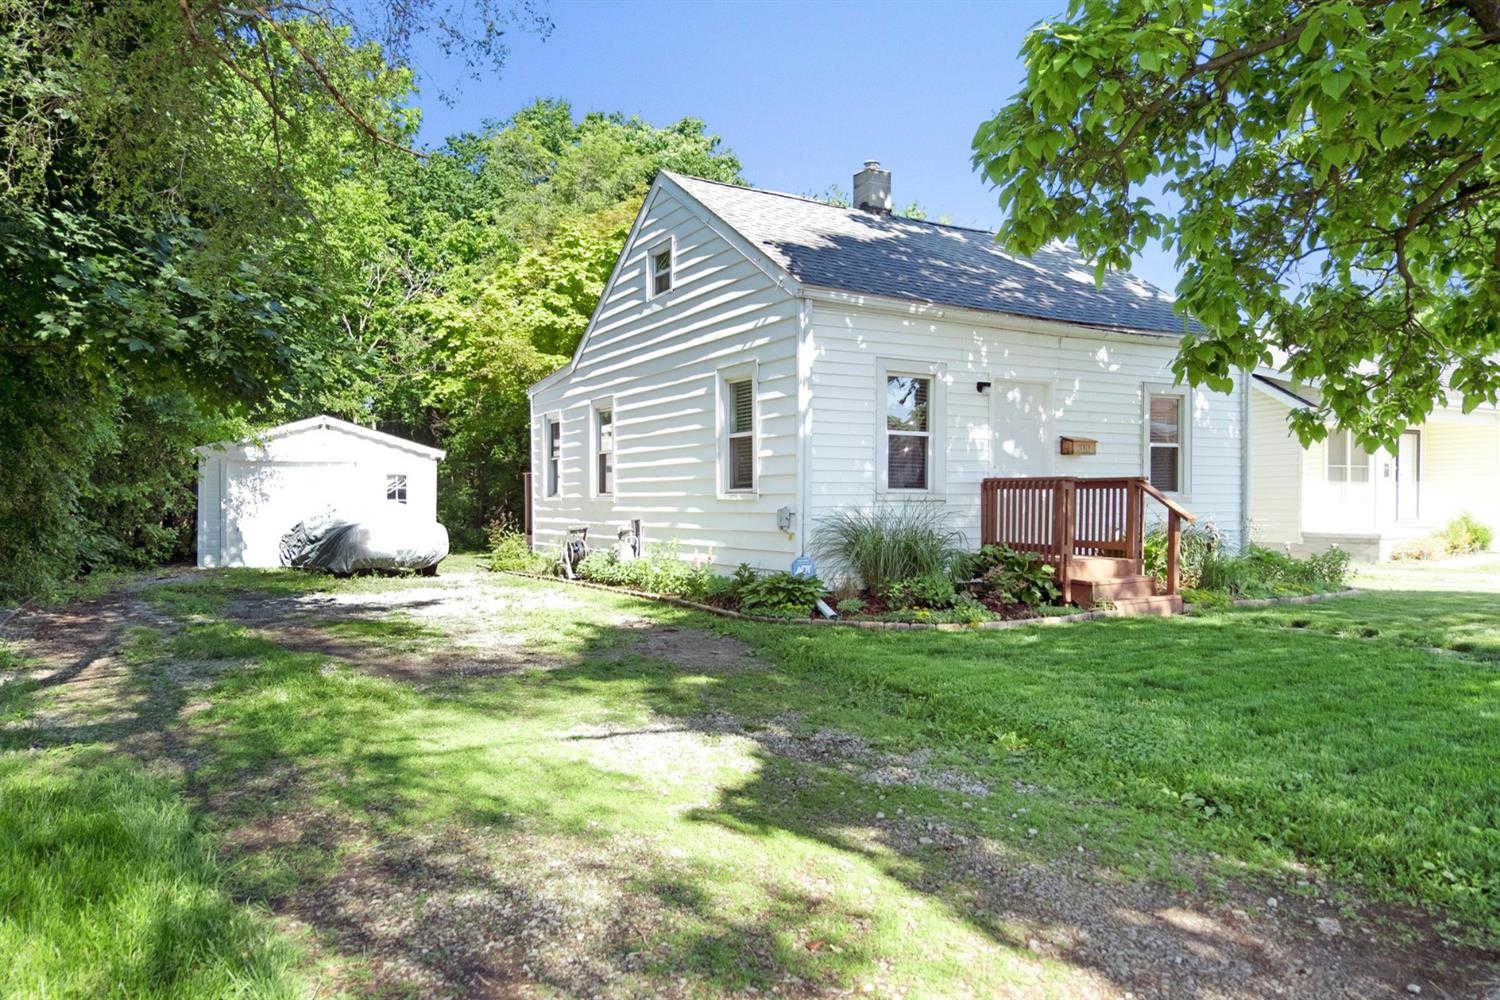 310 S Hamilton Street, Ypsilanti, MI 48197 now has a new price of $70,000!